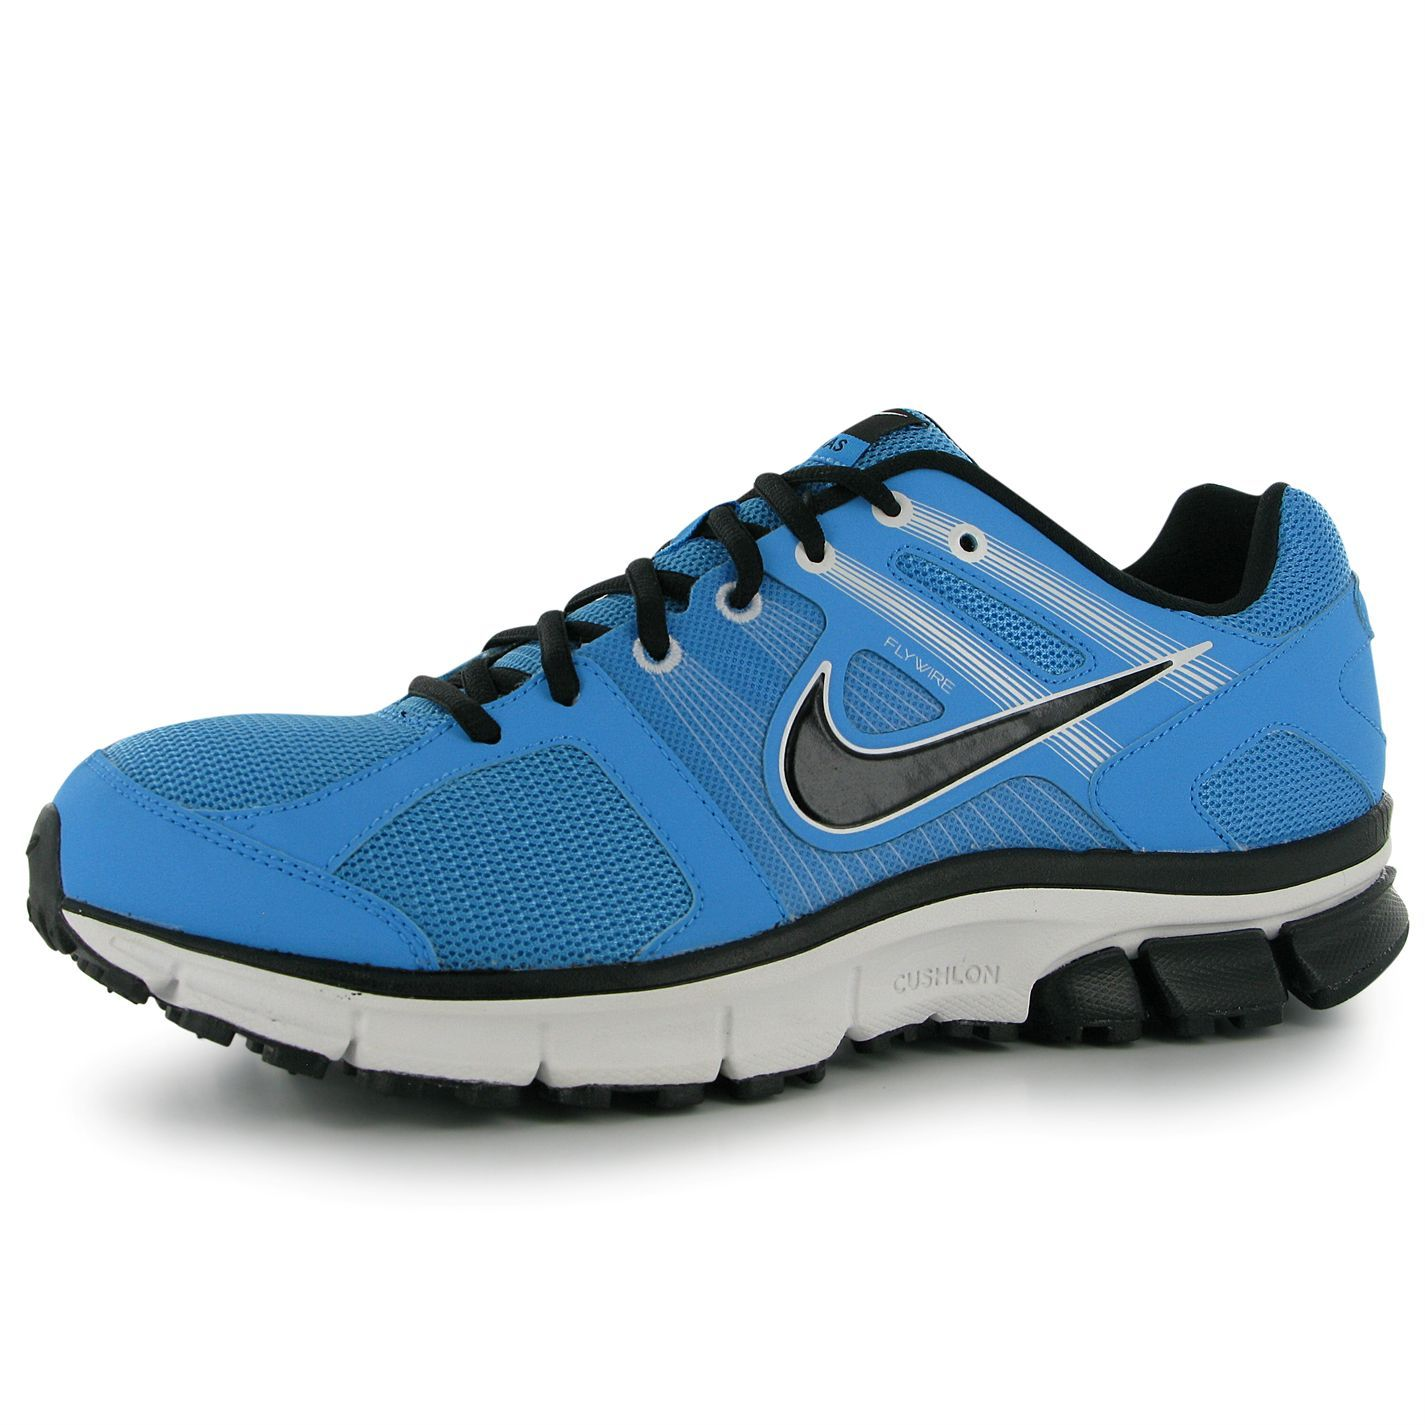 Nike Acamas Mens Running Shoes  Now 39